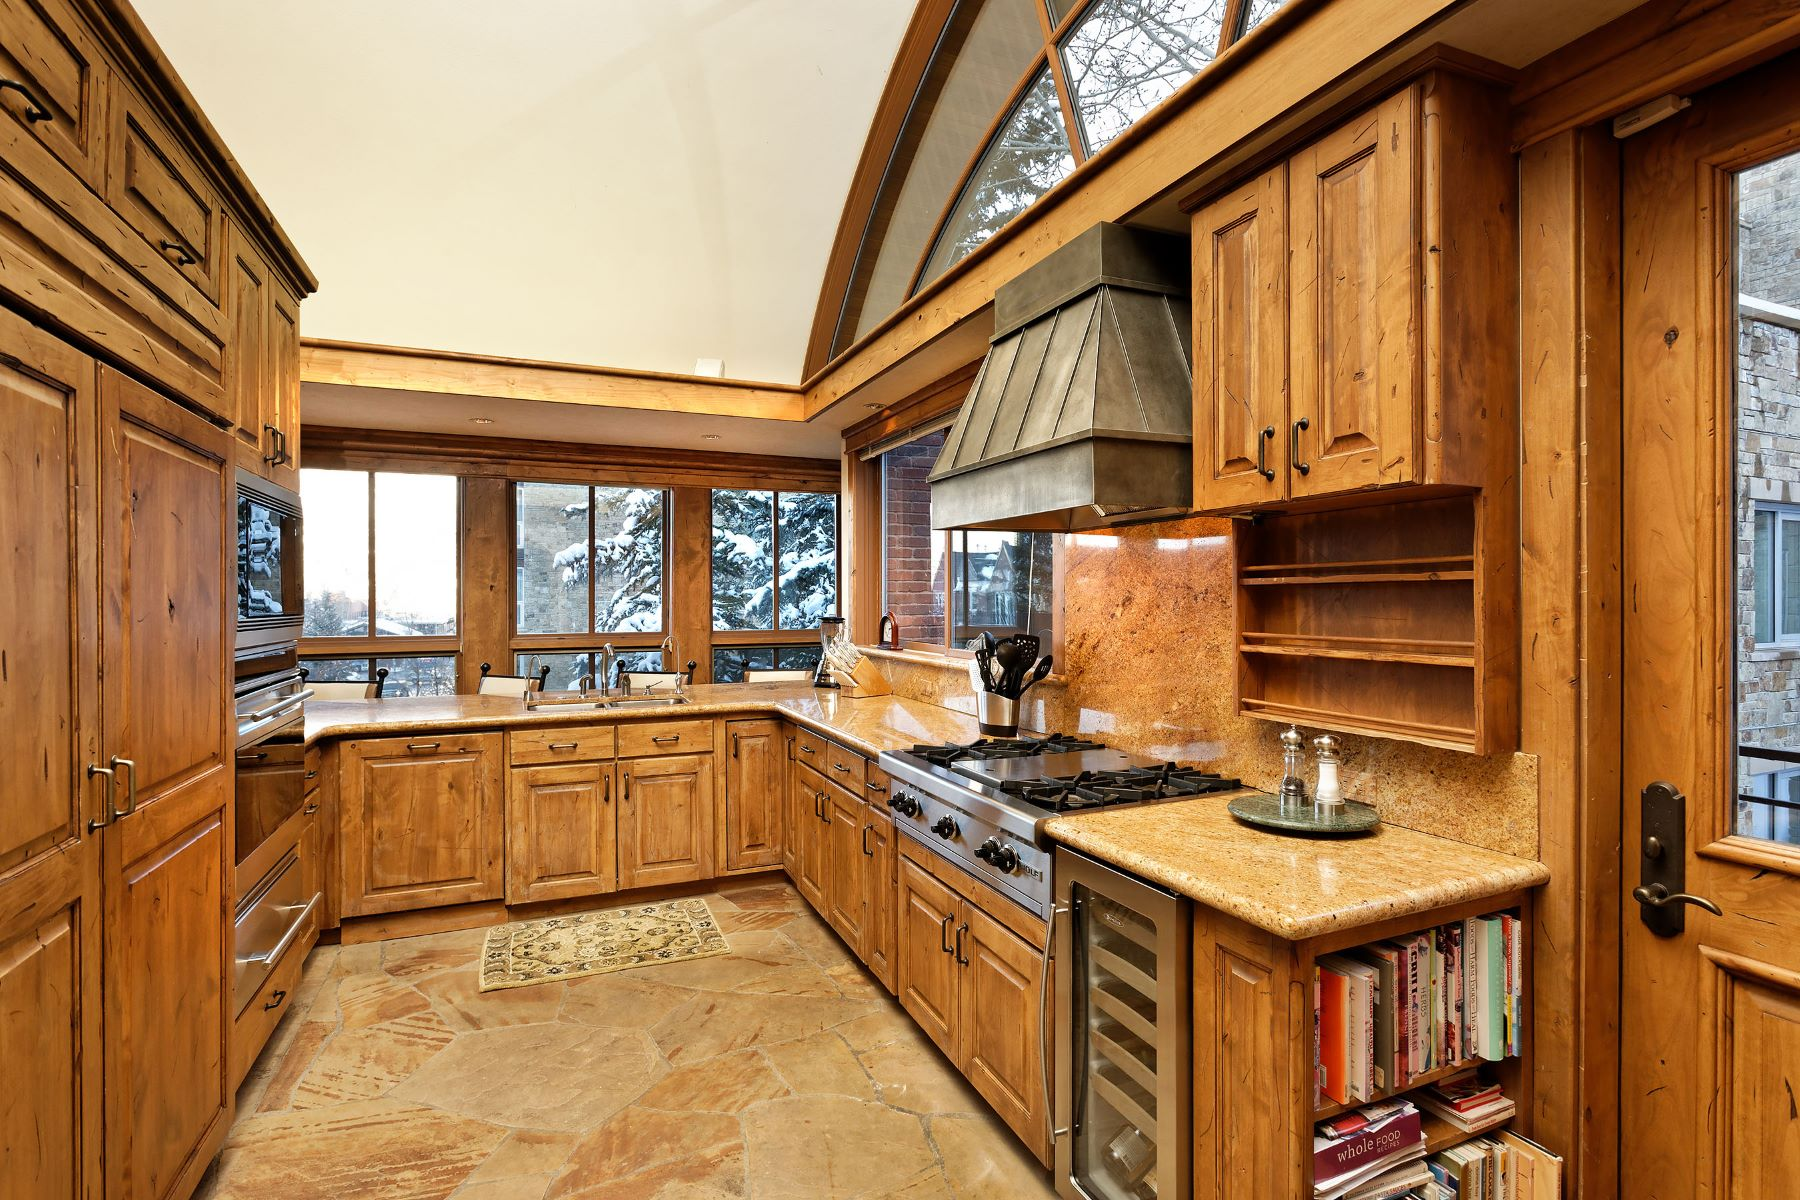 Additional photo for property listing at Galena Place 616 South Galena Street Aspen, Colorado 81611 United States